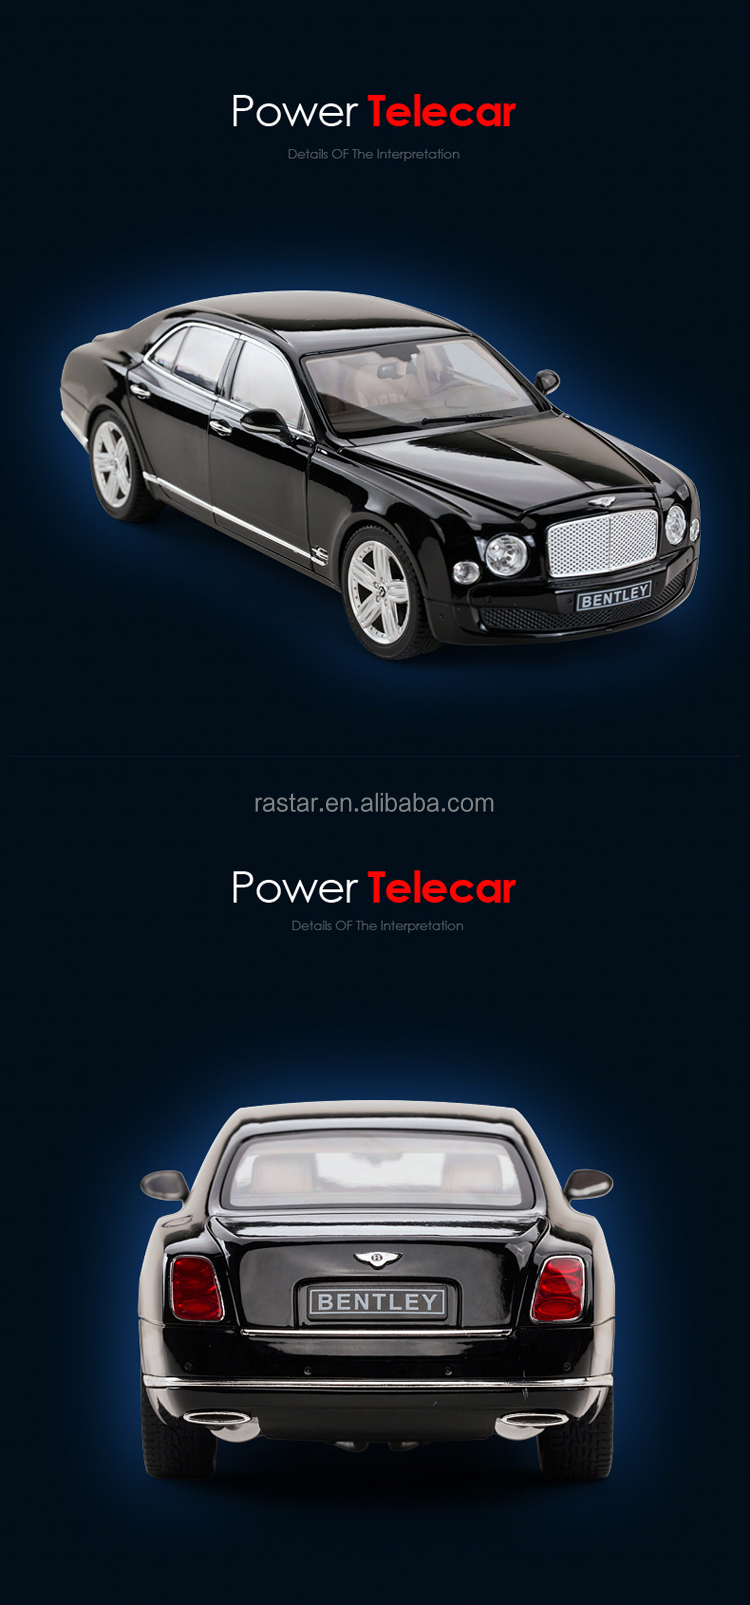 Rastar Diecast 1:18 car model vehicle from China manufacturer